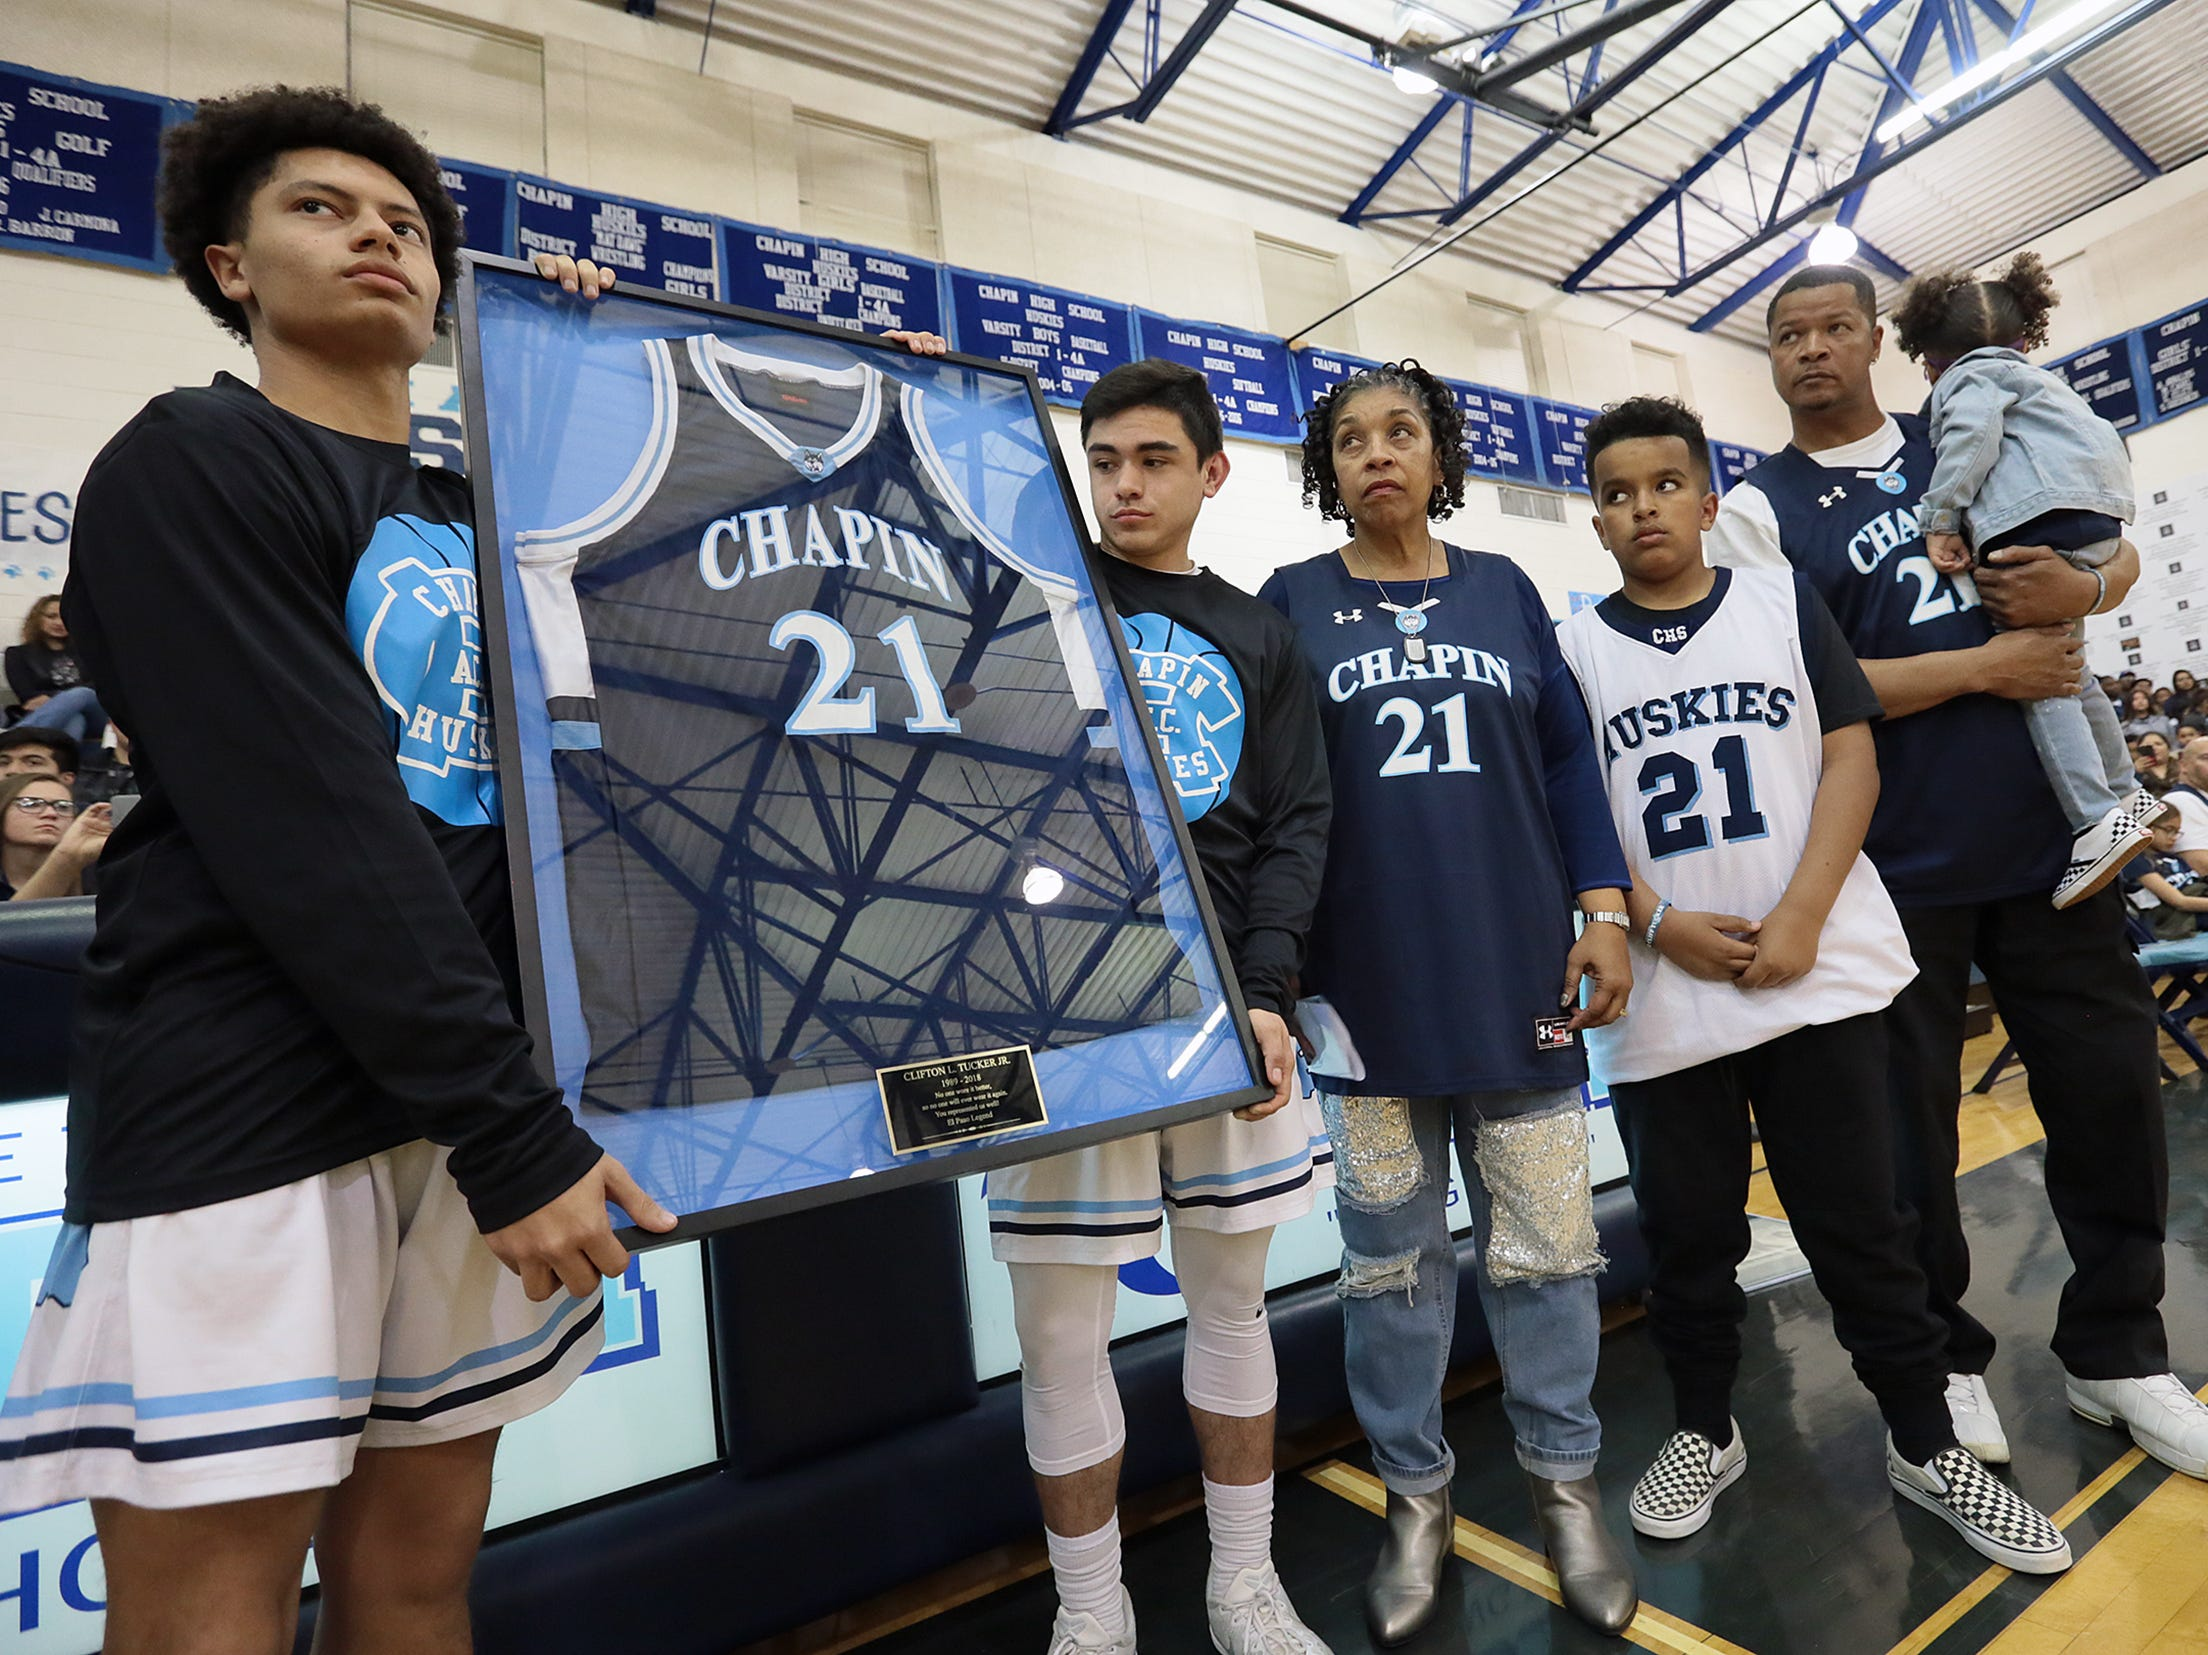 Former Chapin basketball and football star Cliff Tucker had his basketball number retired Friday night before Chapin took on Andress. At Chapin Tucker racked up the honors including District MVP, All Region, All State, McDonald's All American Honorable Mention and was ranked 89th in the nation for high school players. Tucker played for the University of Maryland after graduating from Chapin. Tucker died in a car accident traveling from San Antonio to El Paso on May, 28, 2018.